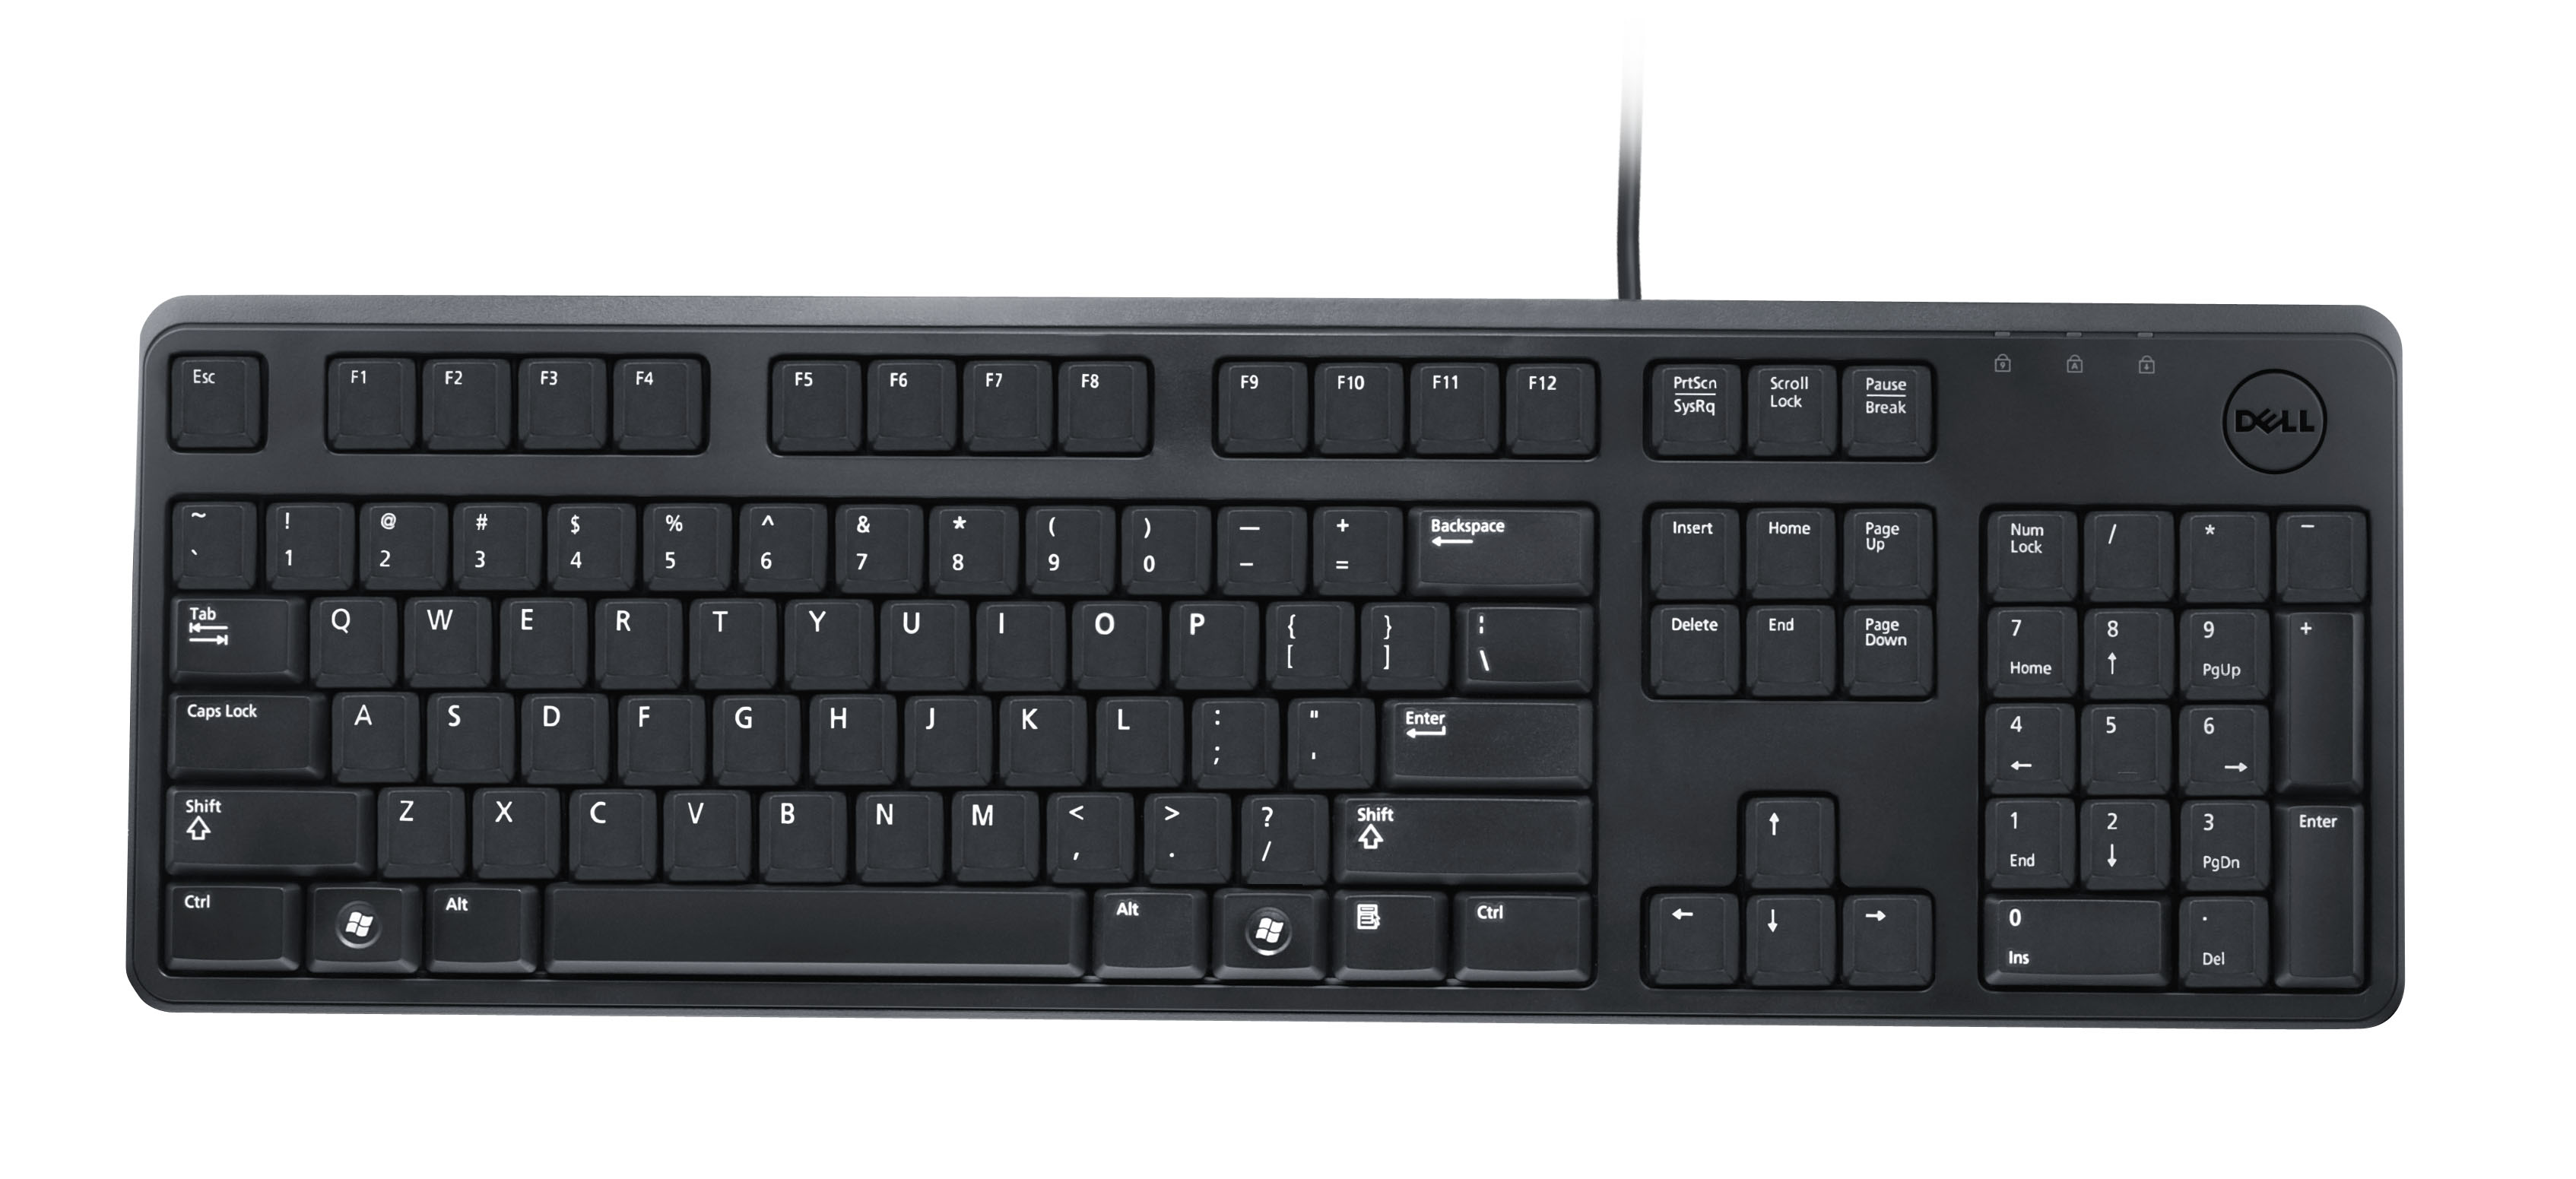 dell usb entry business keyboard kb212 b price in pakistan dell in pakistan at symbios pk. Black Bedroom Furniture Sets. Home Design Ideas